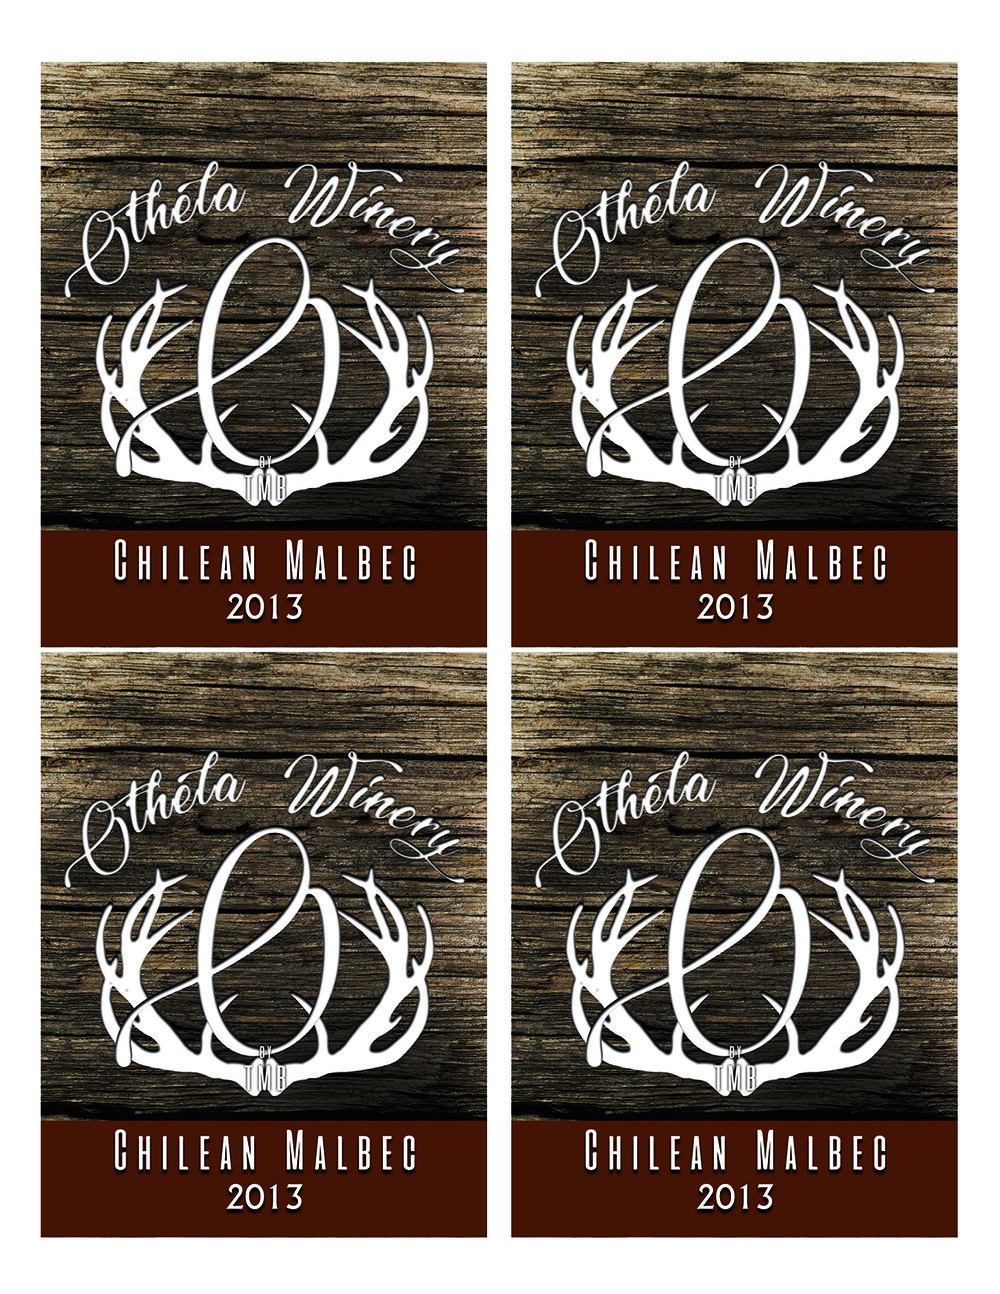 Othela- Chilean Malbec.jpg